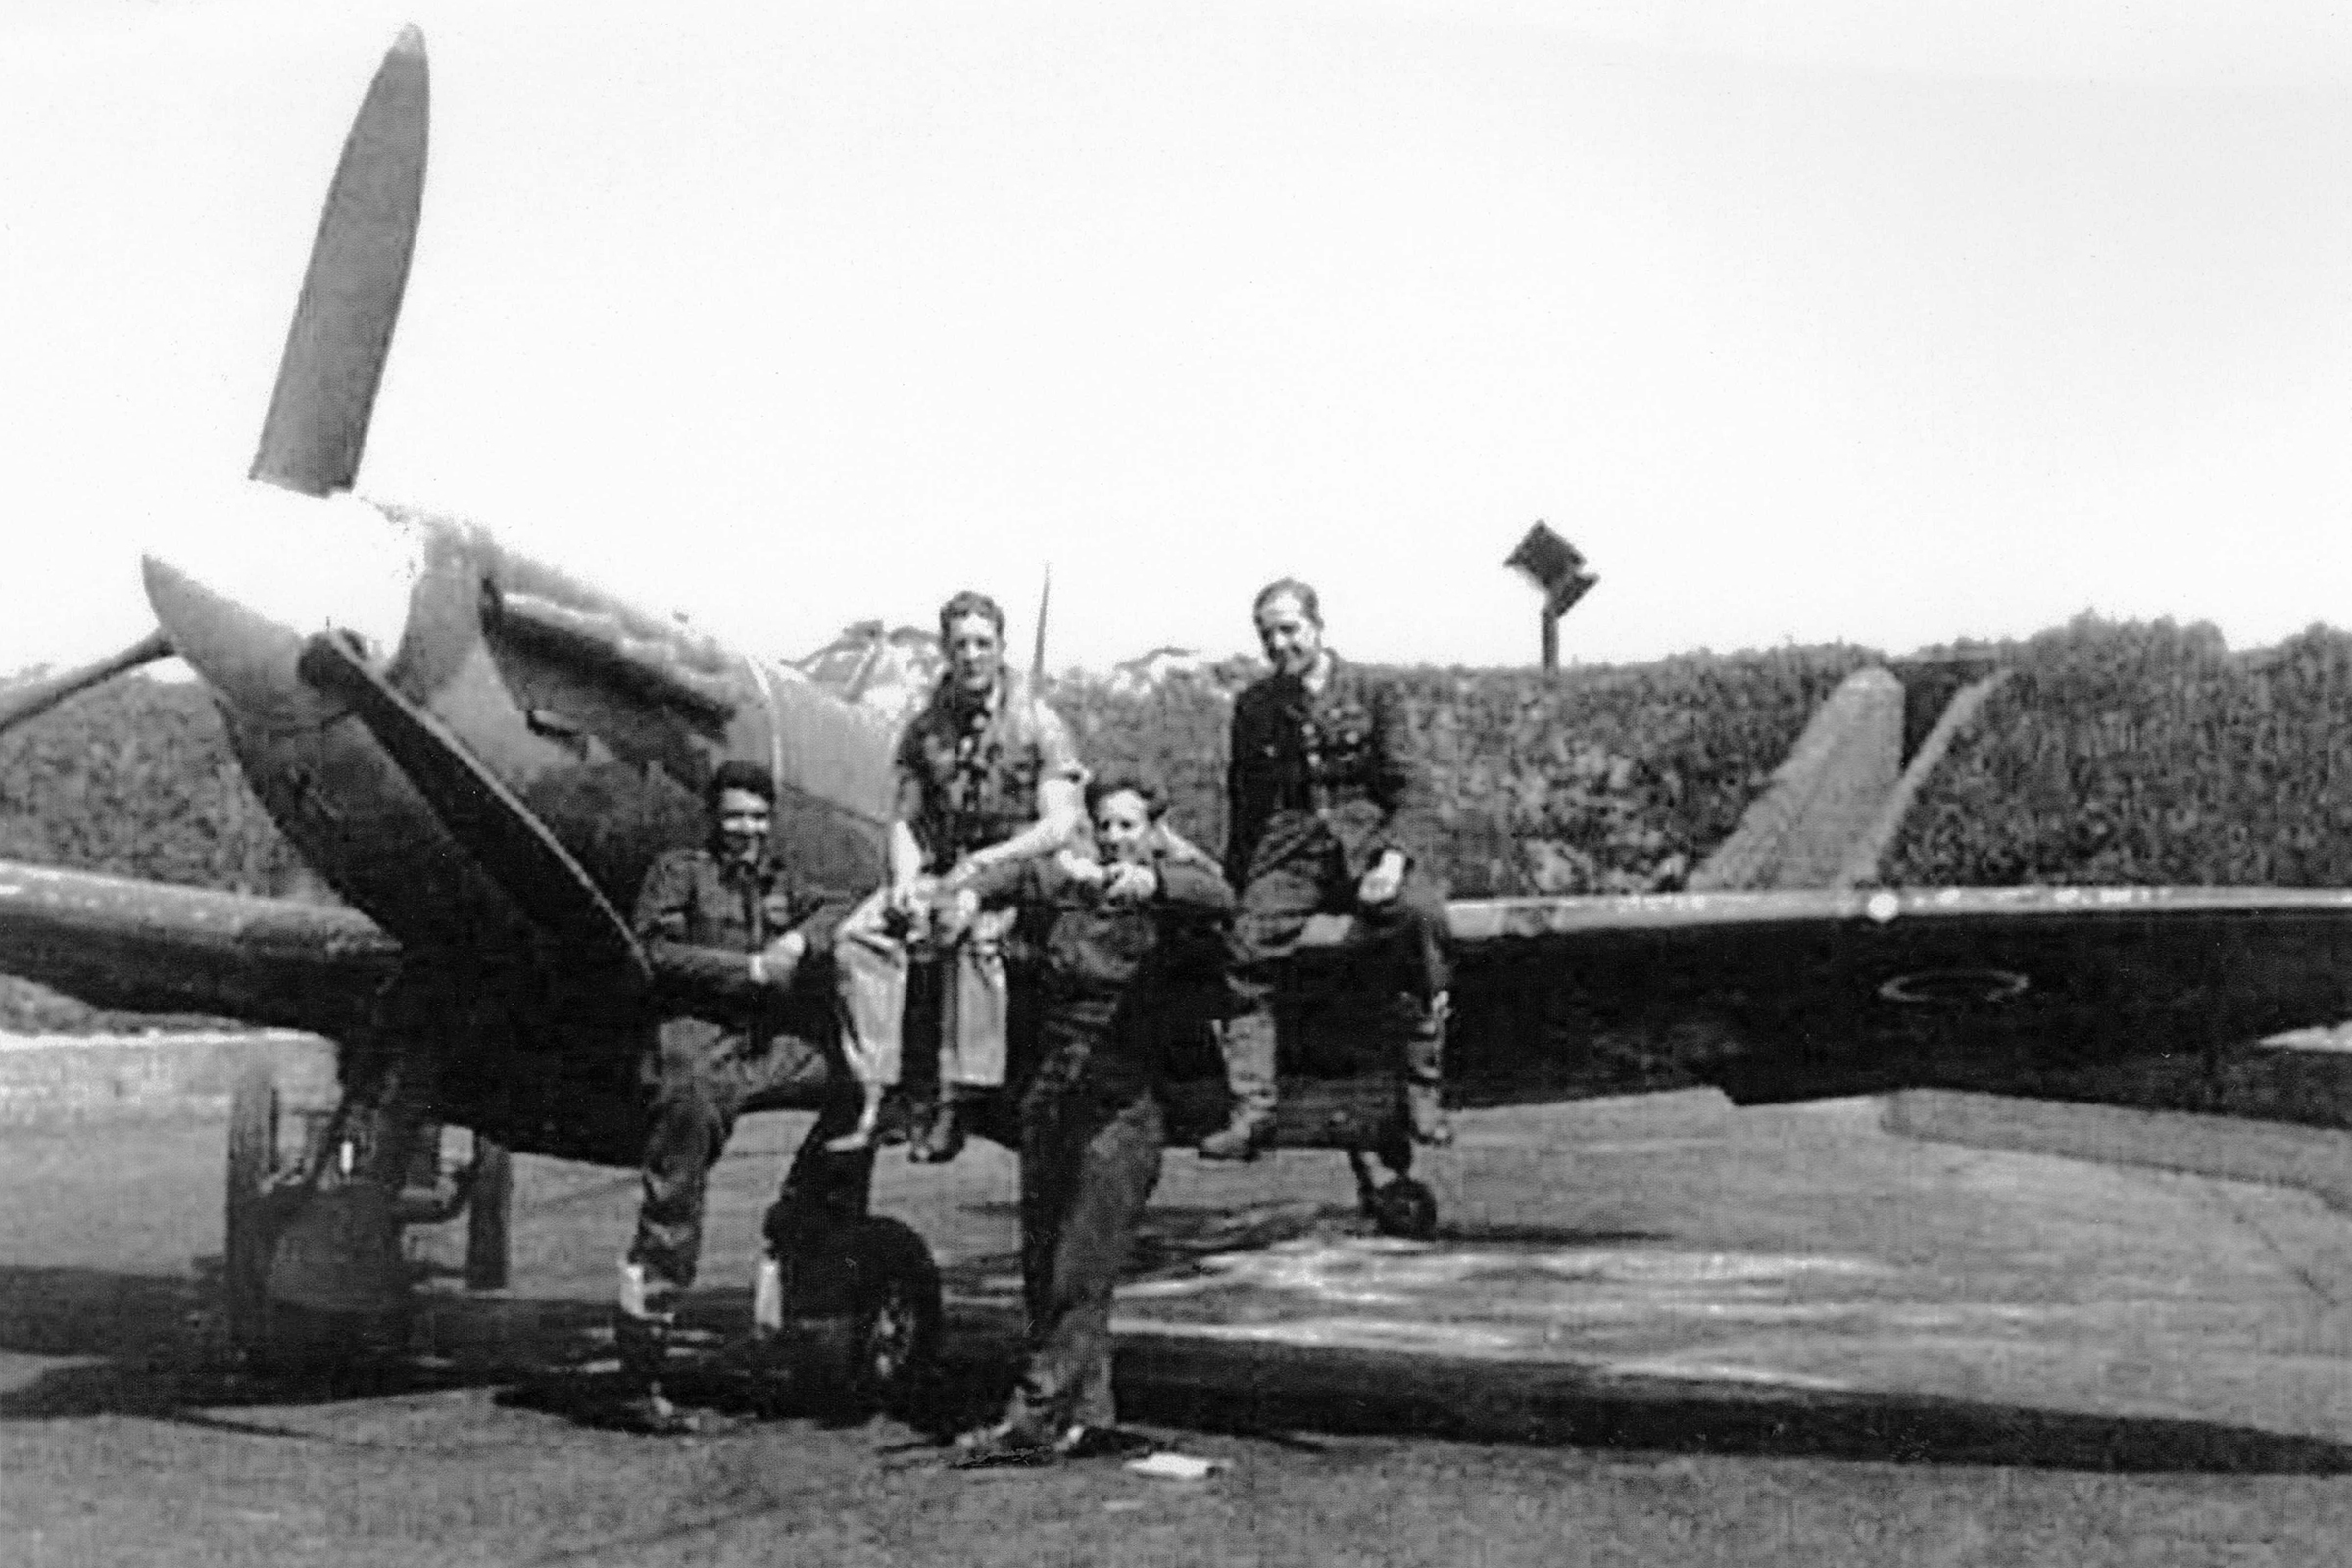 Two young men in uniform sit on the leading edge of the wing of a vintage propeller aircraft, and two more stand in front of the wing.